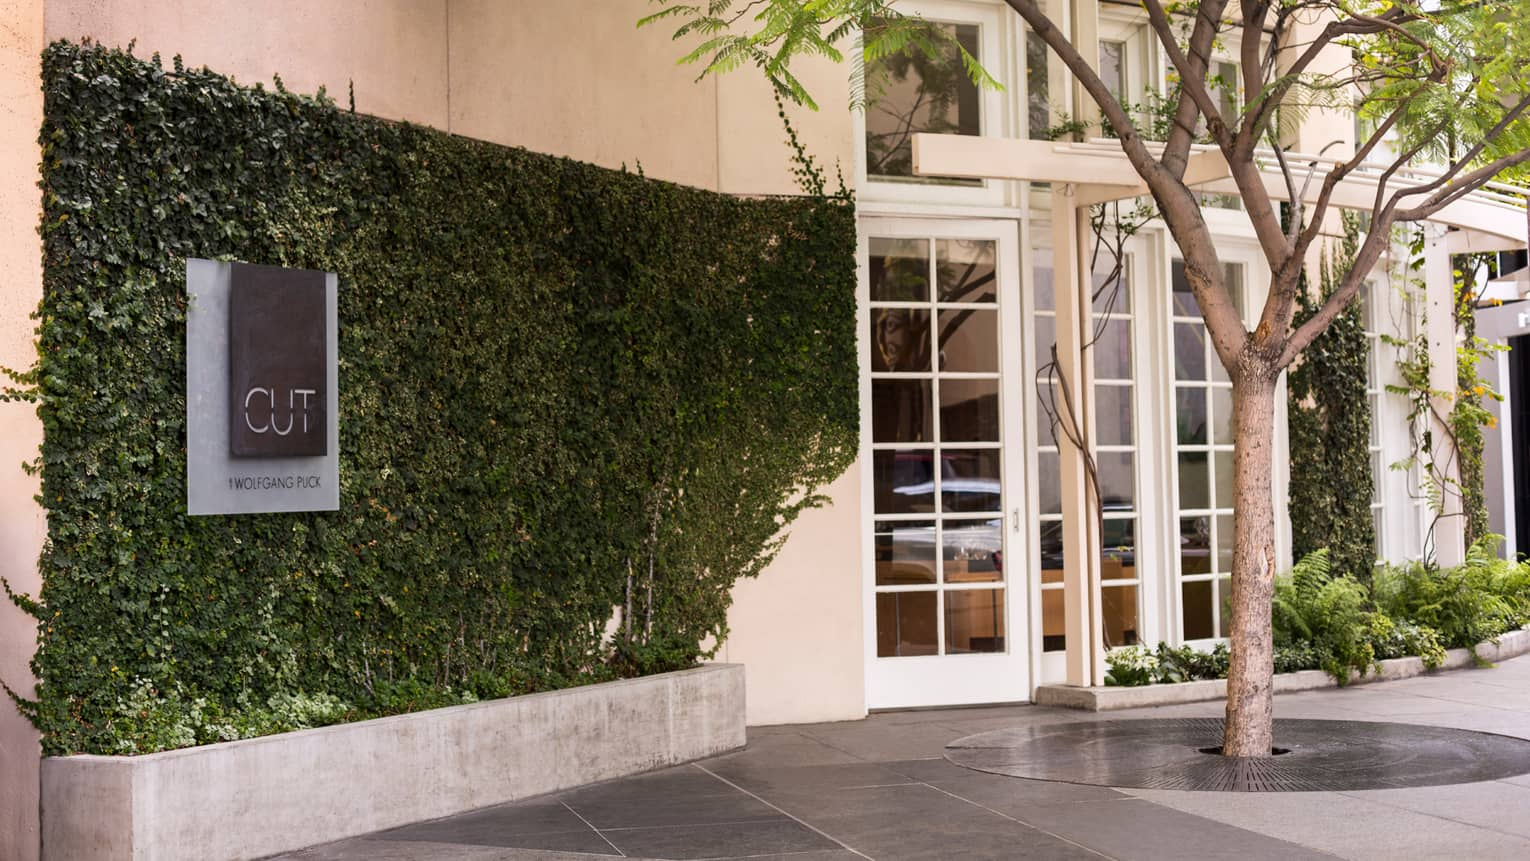 Cut by Wolfgang Puck sign on ivy-covered brick wall at hotel entrance